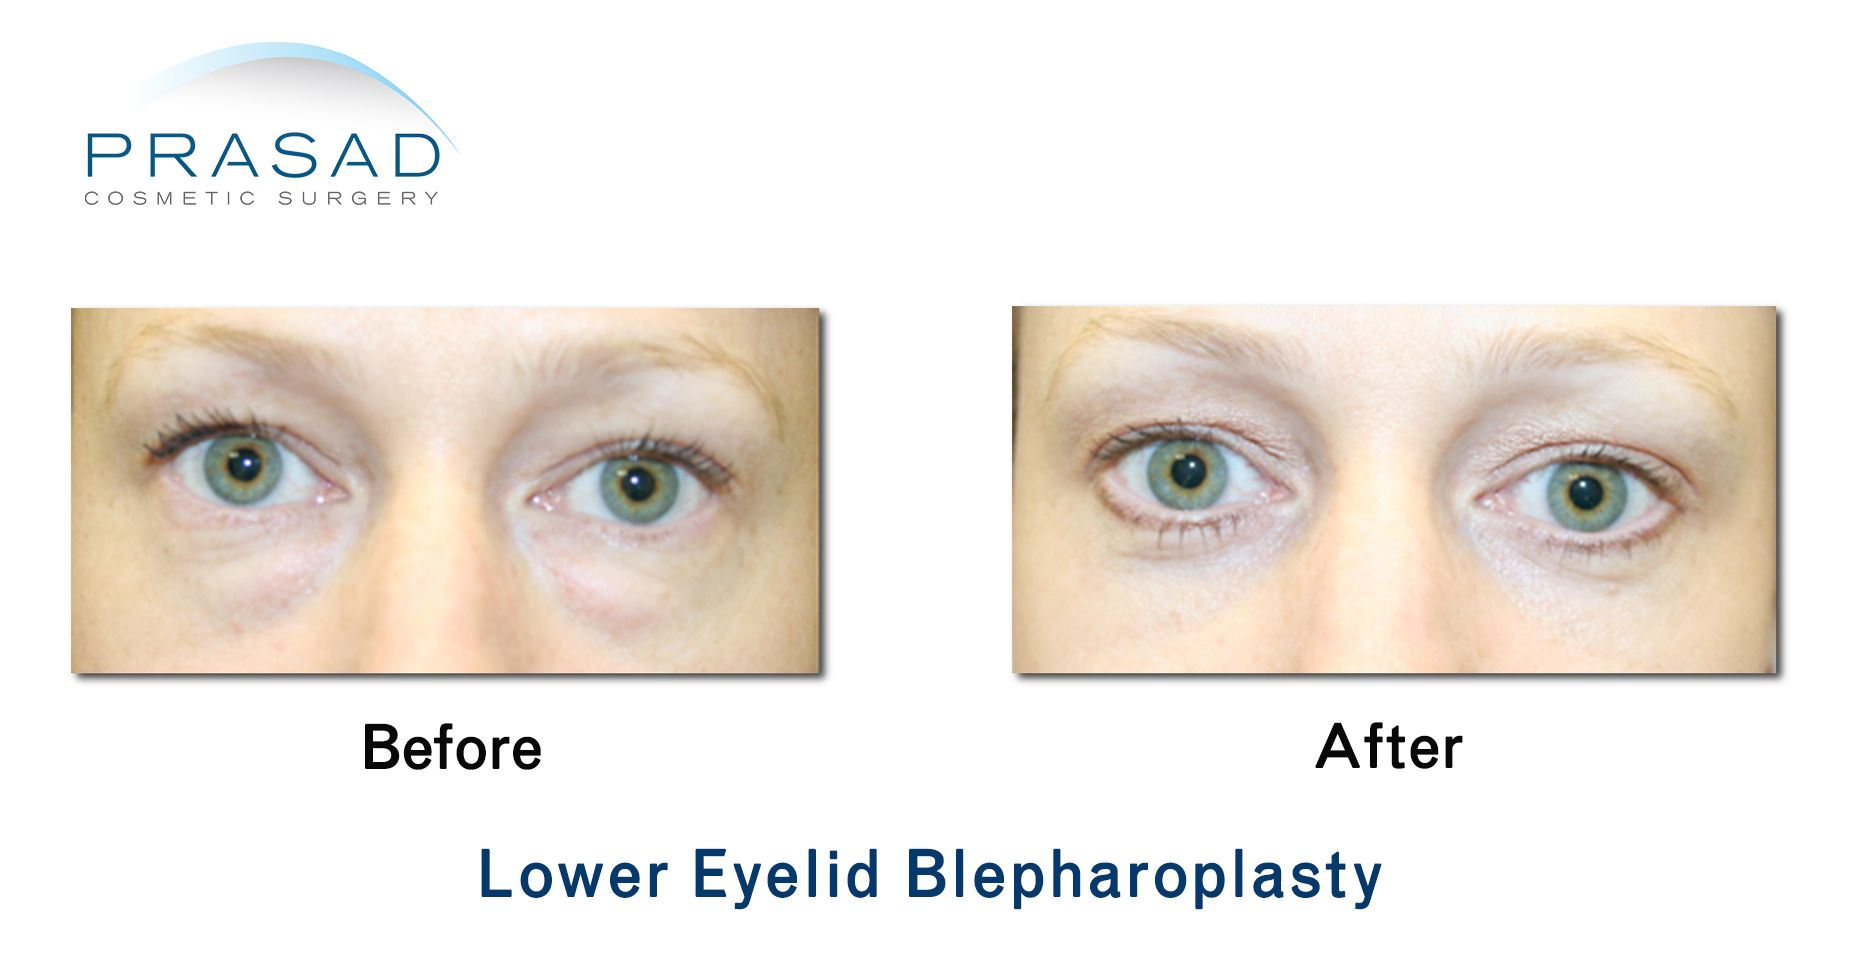 Female Transconjunctival Blepharoplasty Before and After 03 cropped Transconjunctival Blepharoplasty